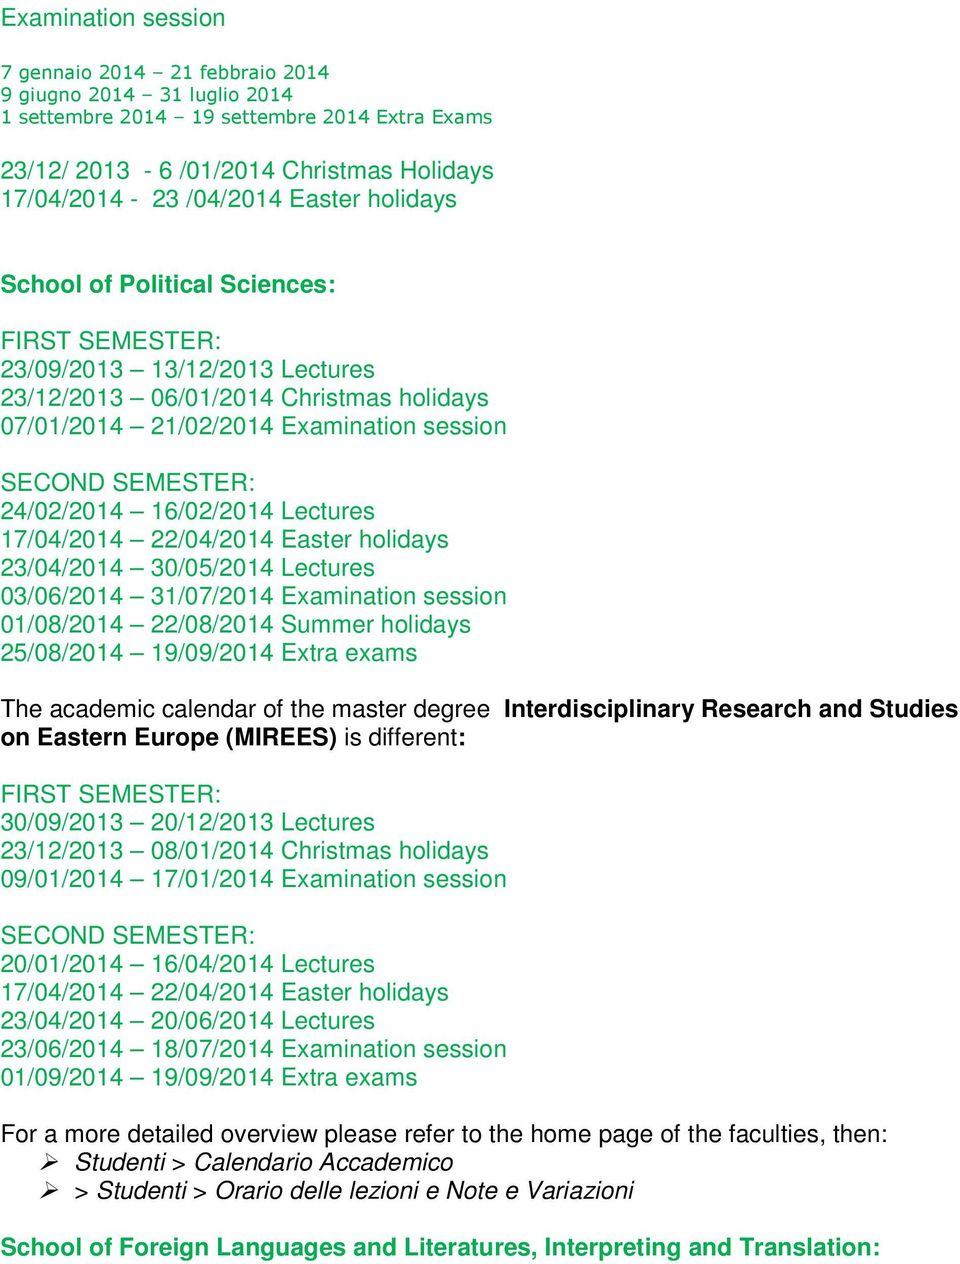 16/02/2014 Lectures 17/04/2014 22/04/2014 Easter holidays 23/04/2014 30/05/2014 Lectures 03/06/2014 31/07/2014 Examination session 01/08/2014 22/08/2014 Summer holidays 25/08/2014 19/09/2014 Extra